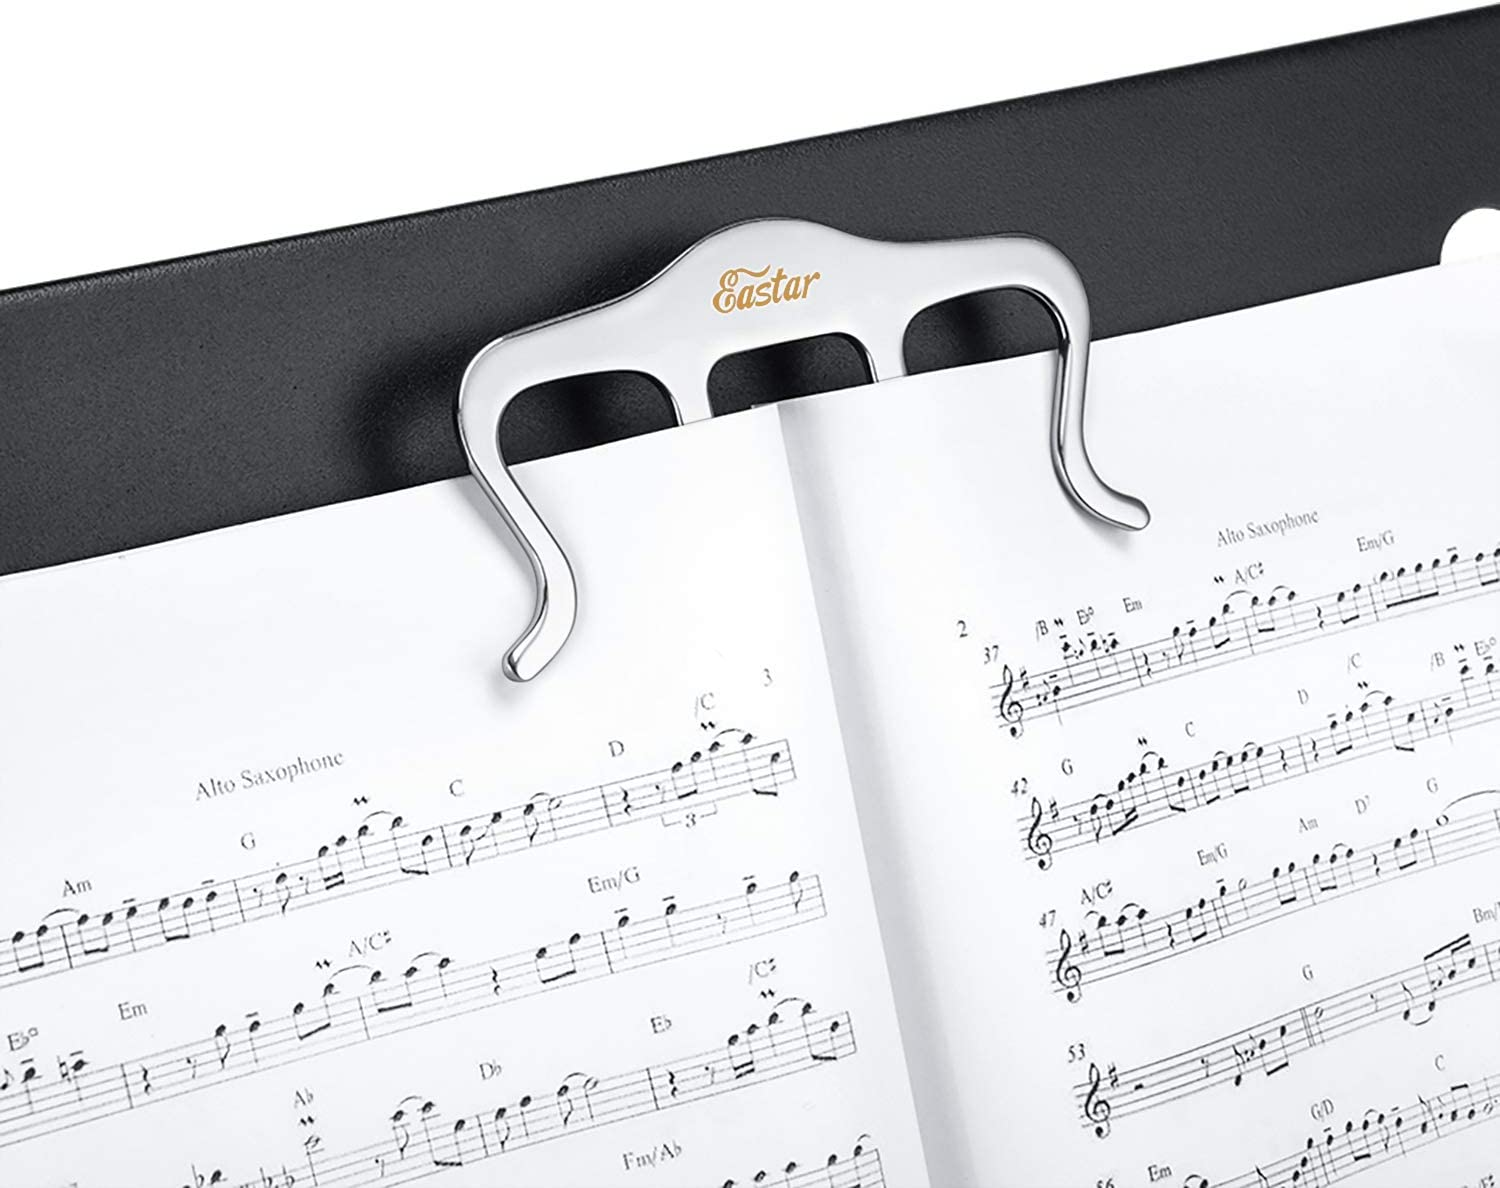 Keyboard Eastar Metal Music Book Clip Book Holder Markers for Piano Books Bookmark 1 Pack Page Holder Stands Metal Sheet Music Holder